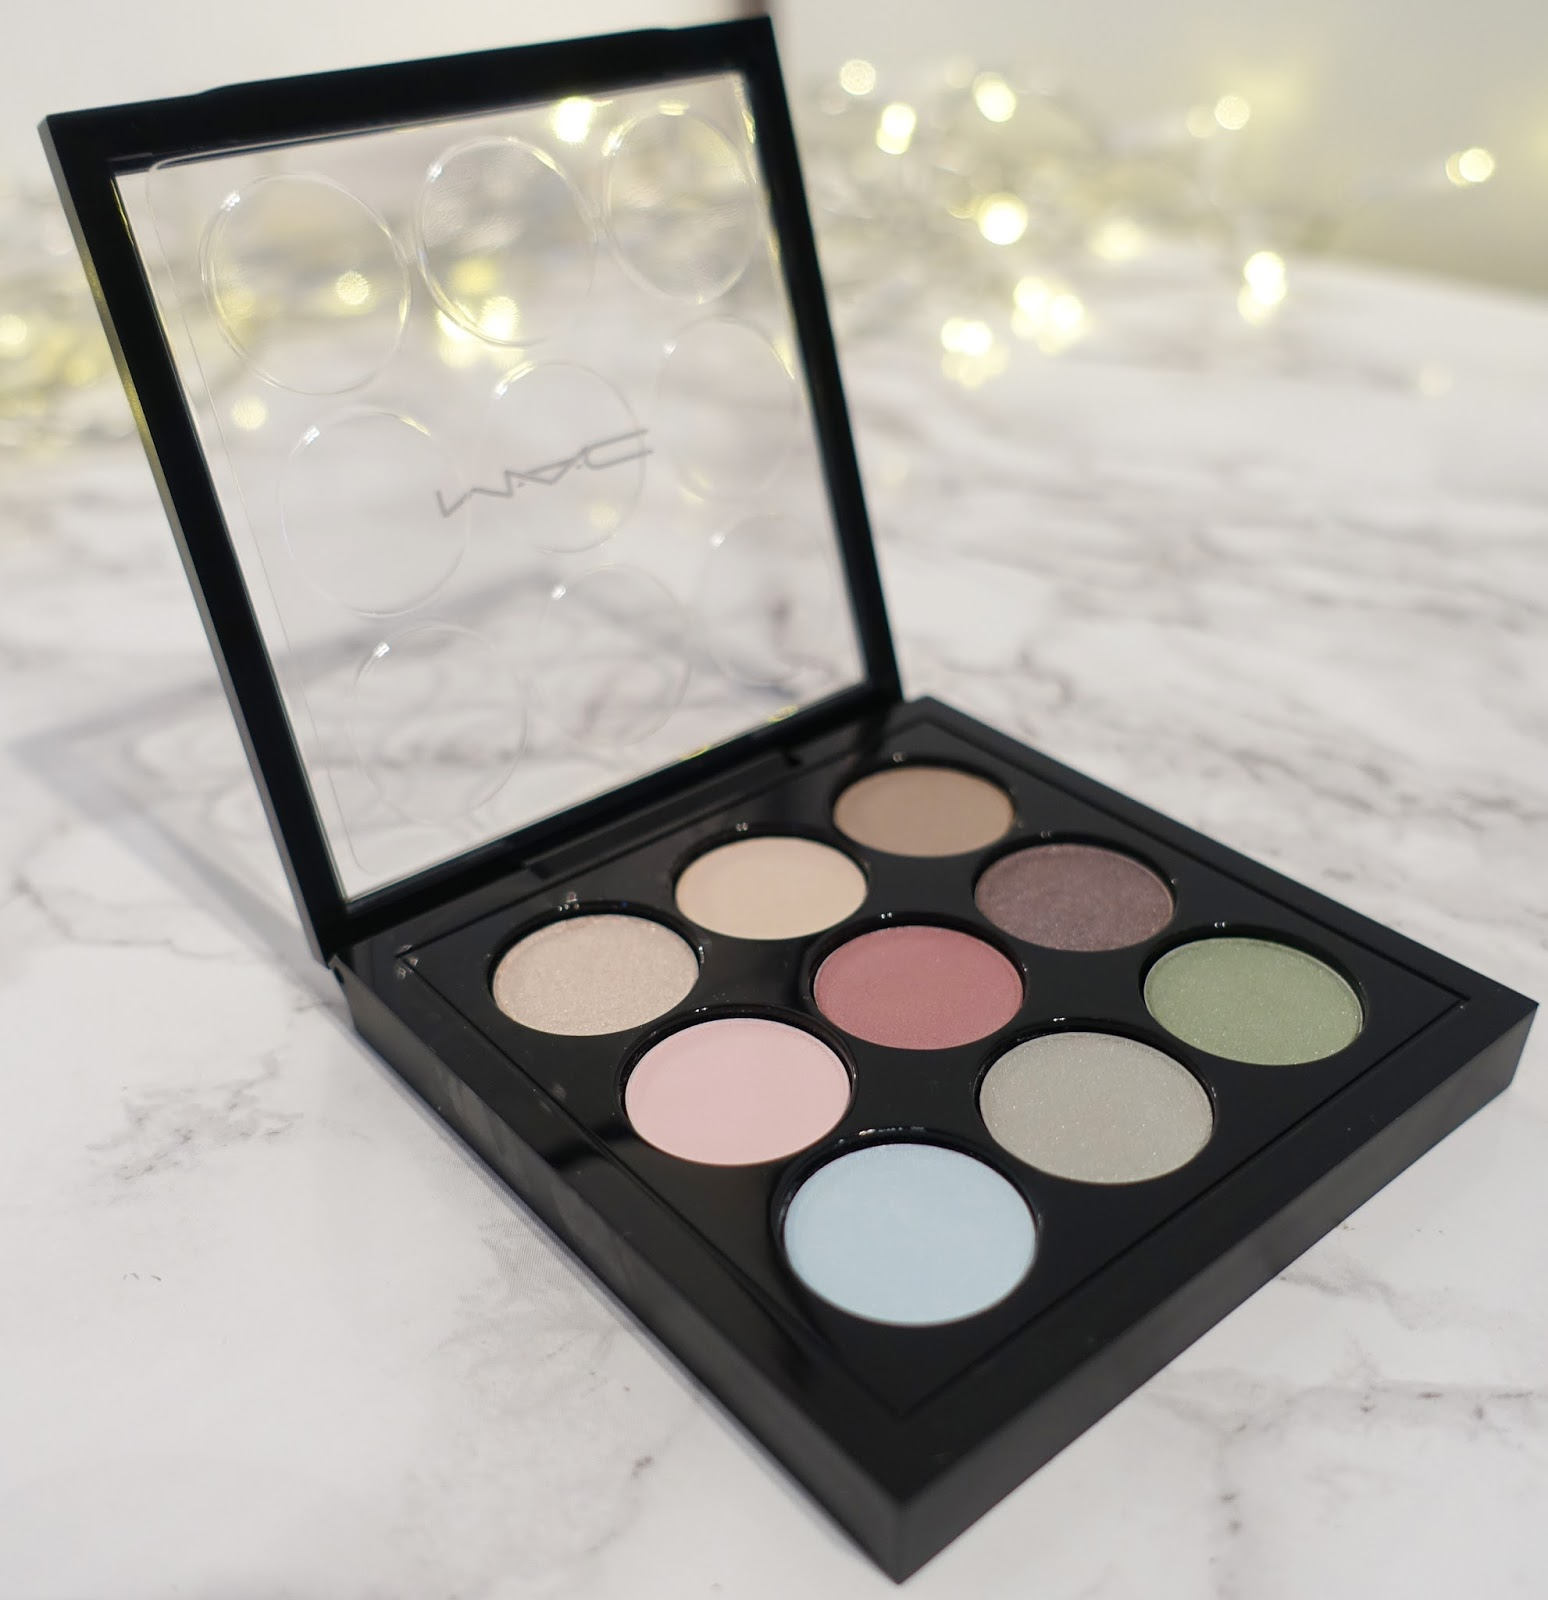 Image showing the MAC Pastel Times Nine eye shadow palette, copyright Is-This-Mutton blog for the over-40s